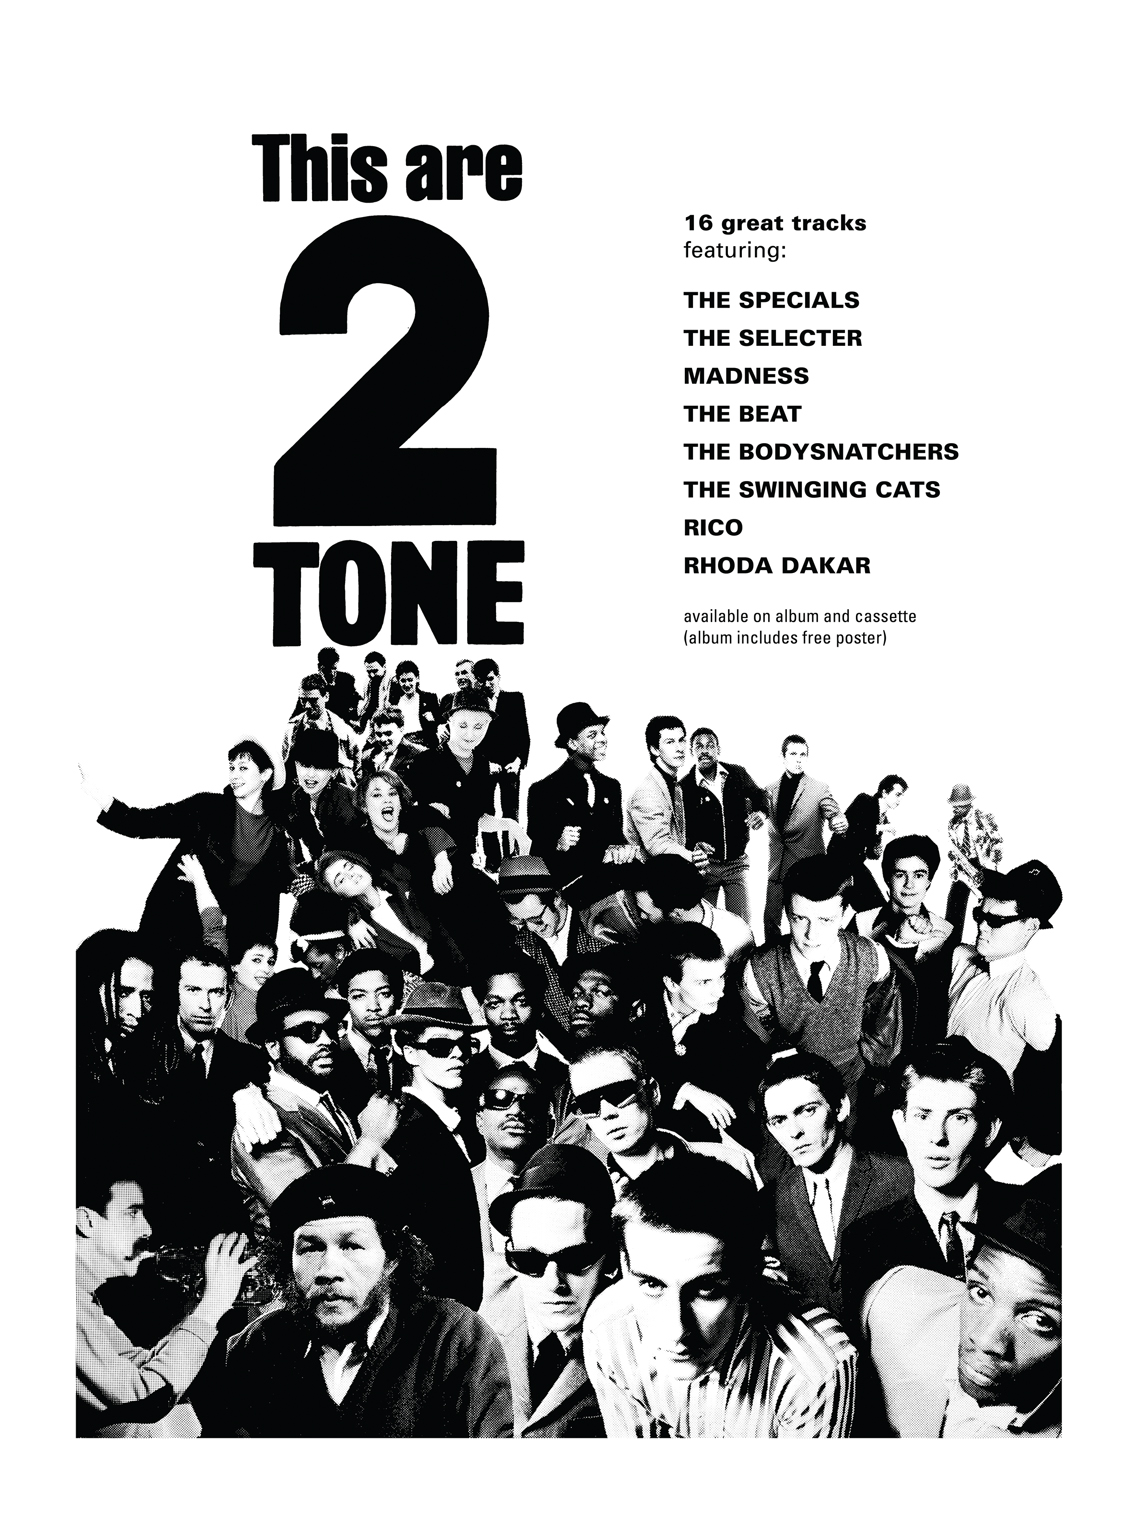 Poster designed by David Storey for the release of albums This Are 2 Tone and The Selecter's debut, Too Much Pressure